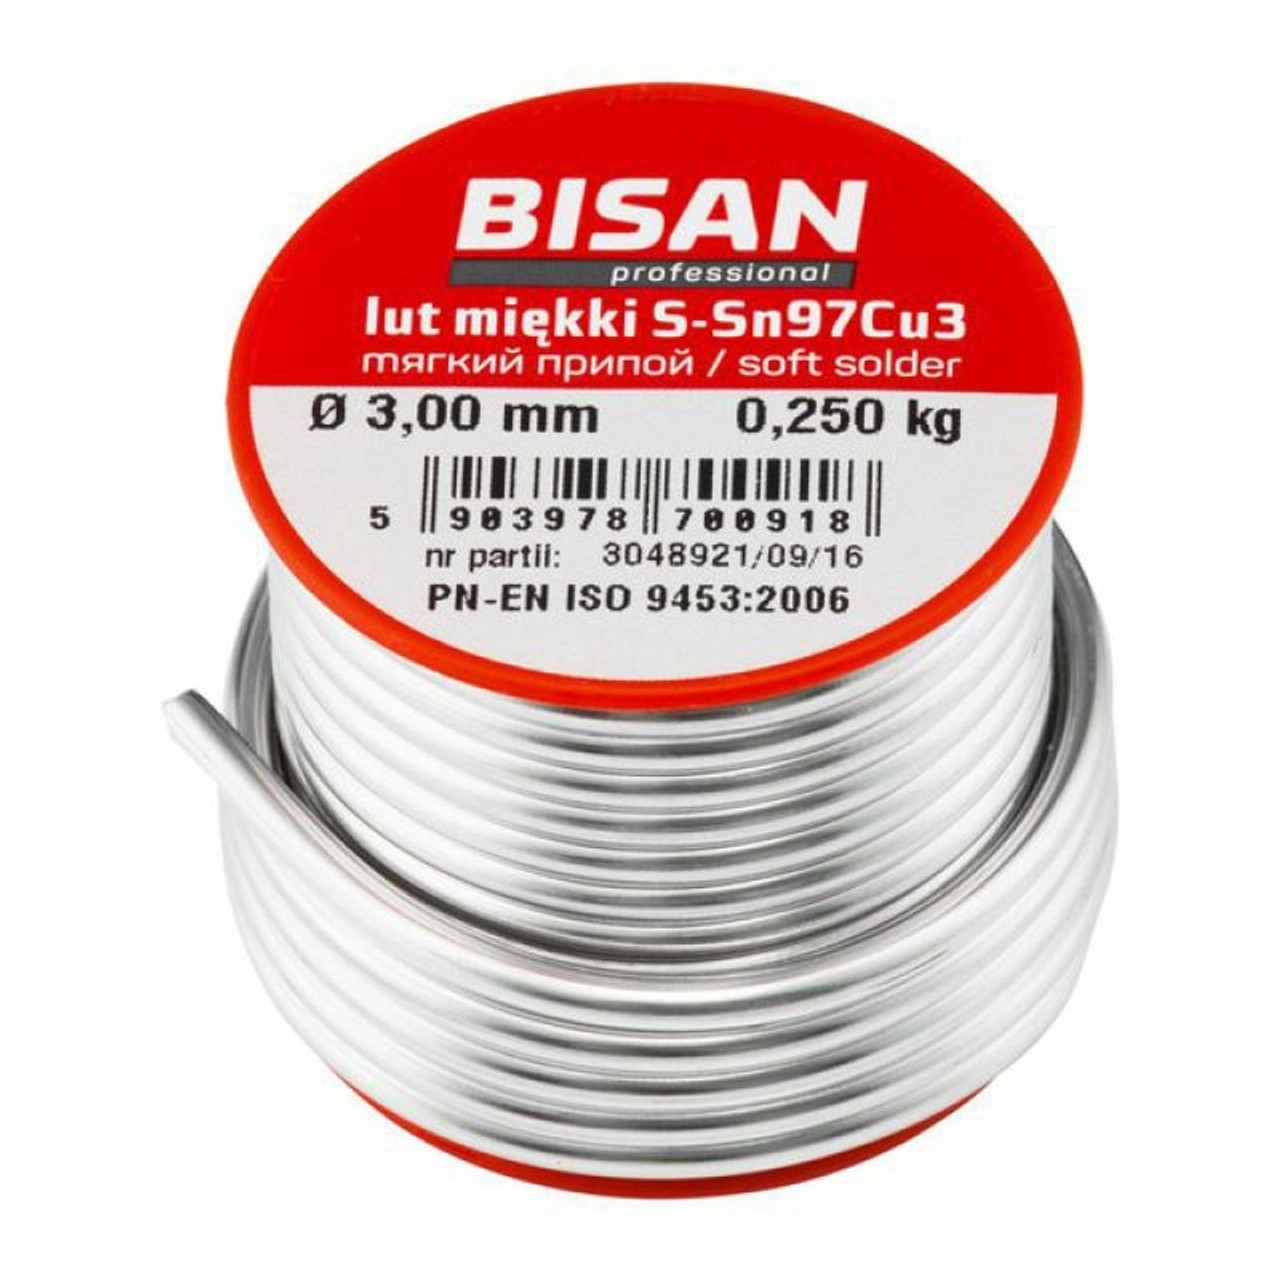 250g Lead Free Plumbers Solder Wire Soft S-sn97cu3 2.5mm For Copper Wiring Near Plumbing on